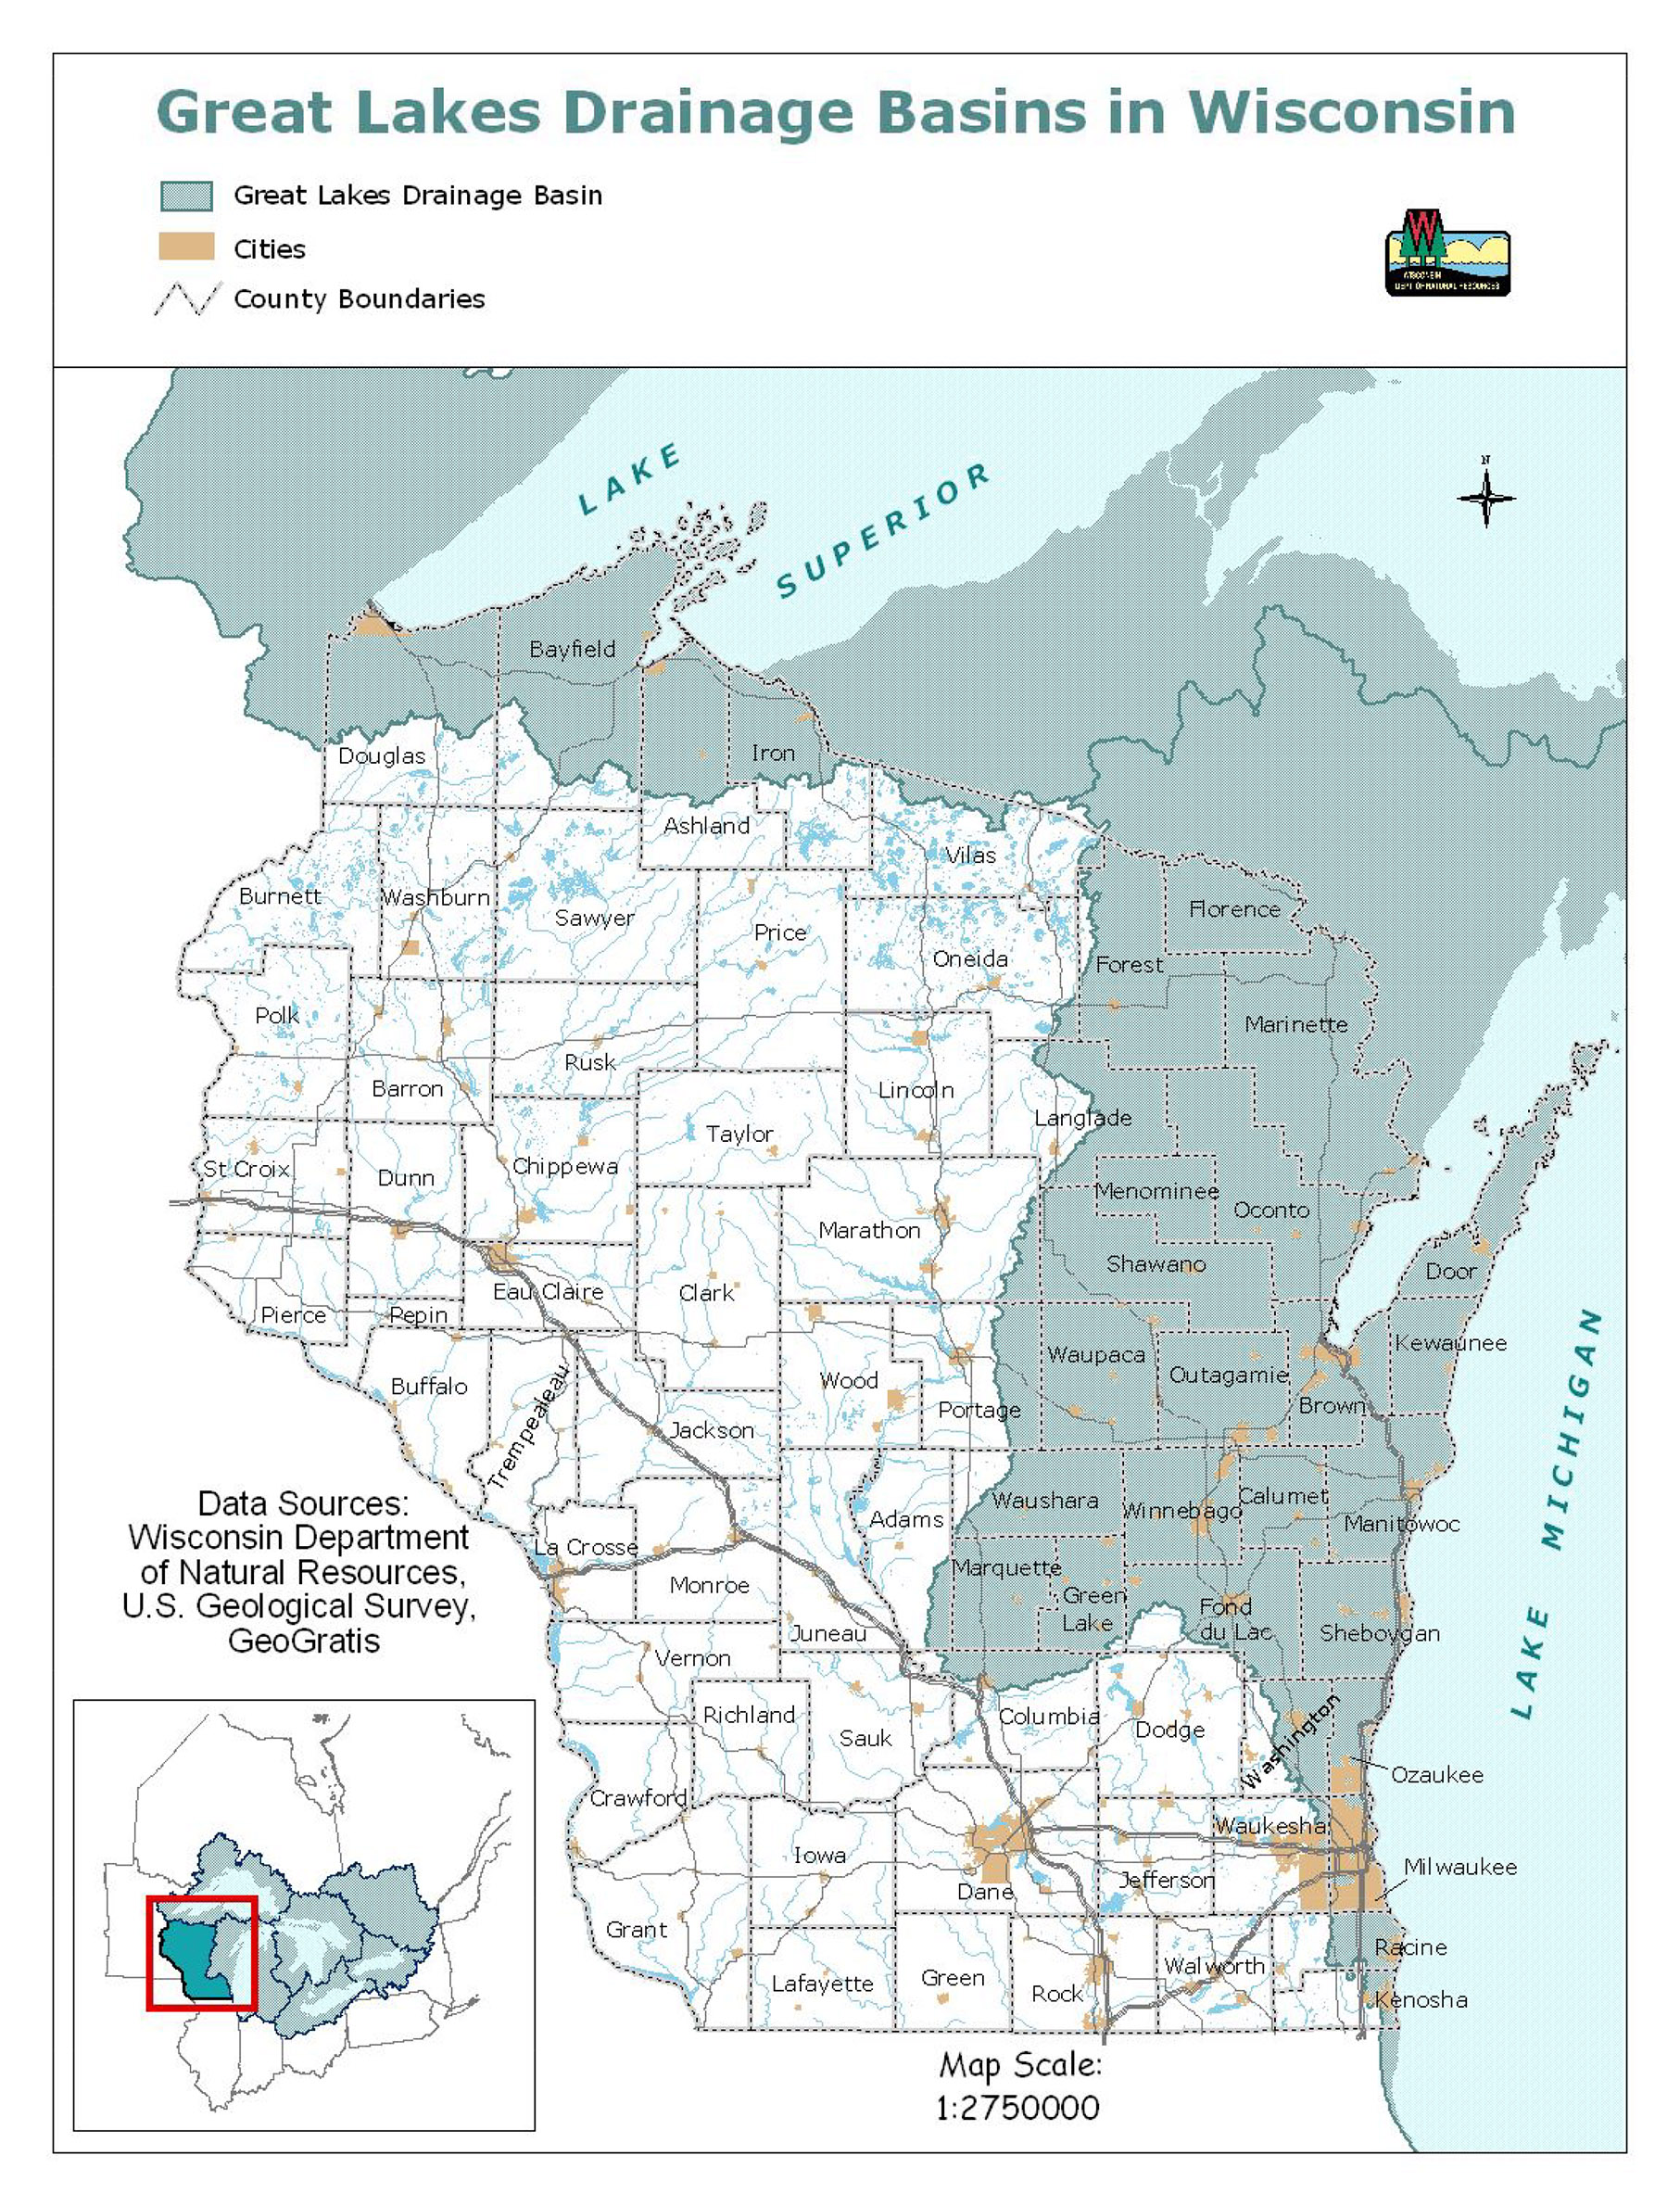 Racine Wisconsin Map.Where The Great Lakes Compact Ends And Wisconsin Law Begins Urban